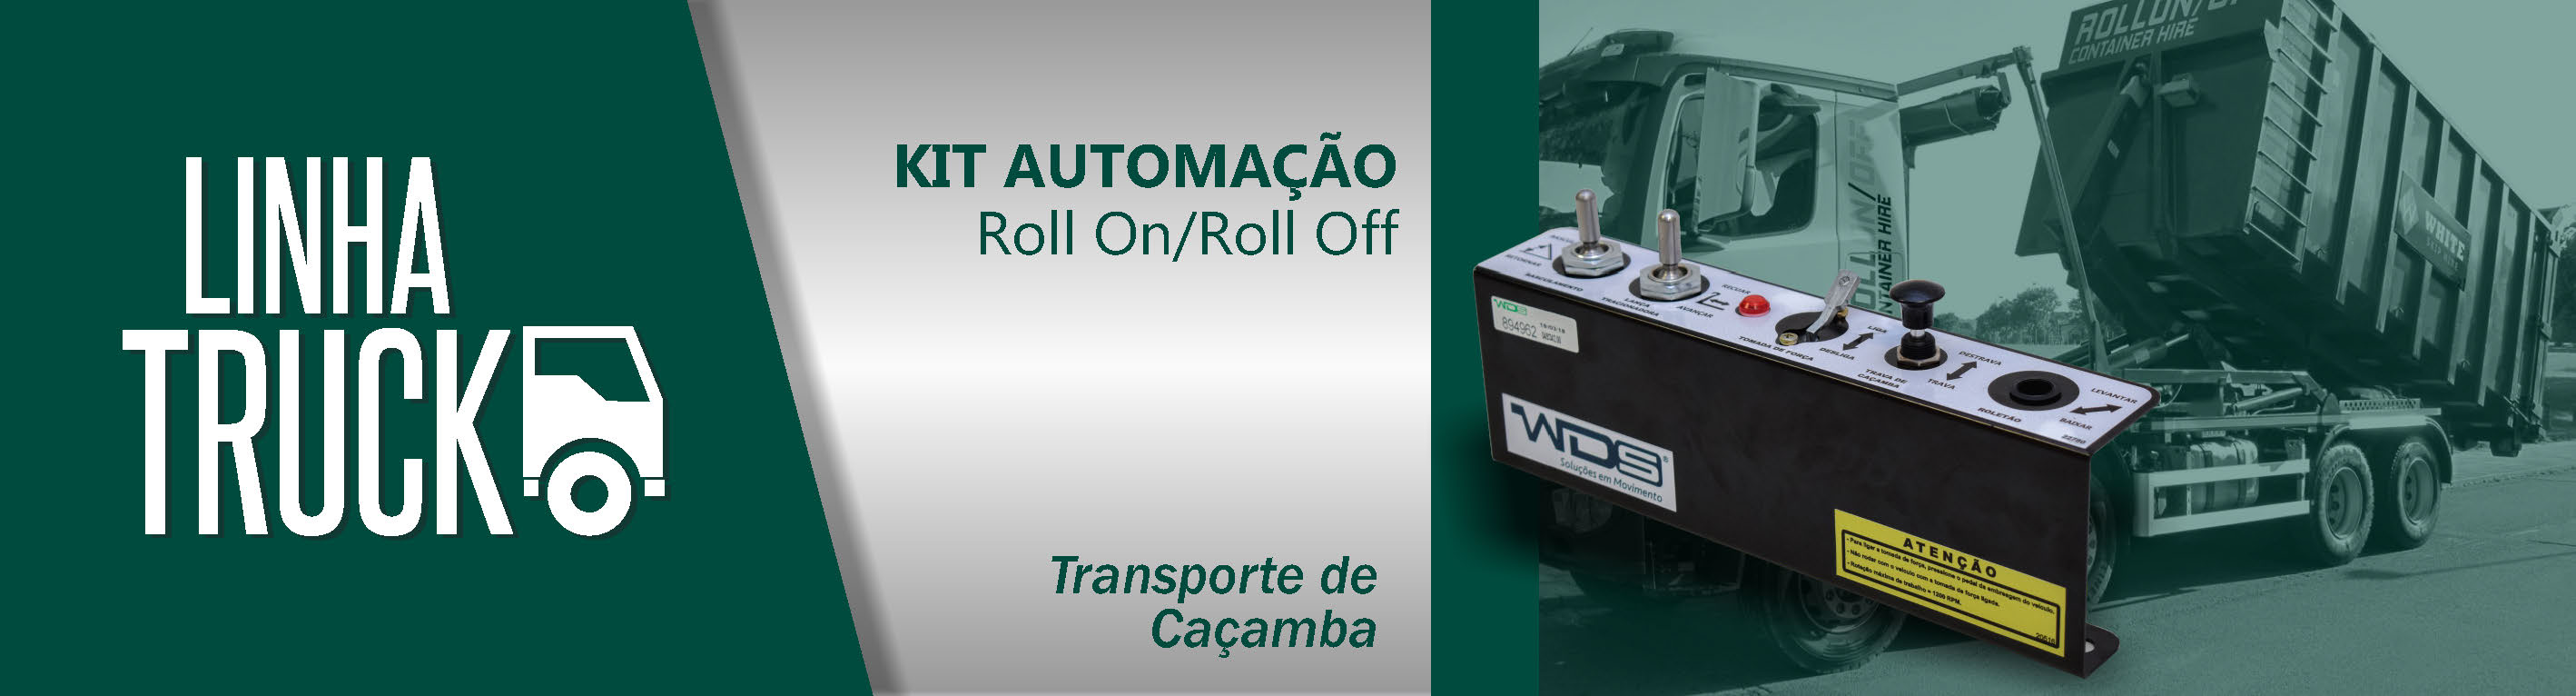 BANNERS_LINHA_TRUCK-2307-_Page_19